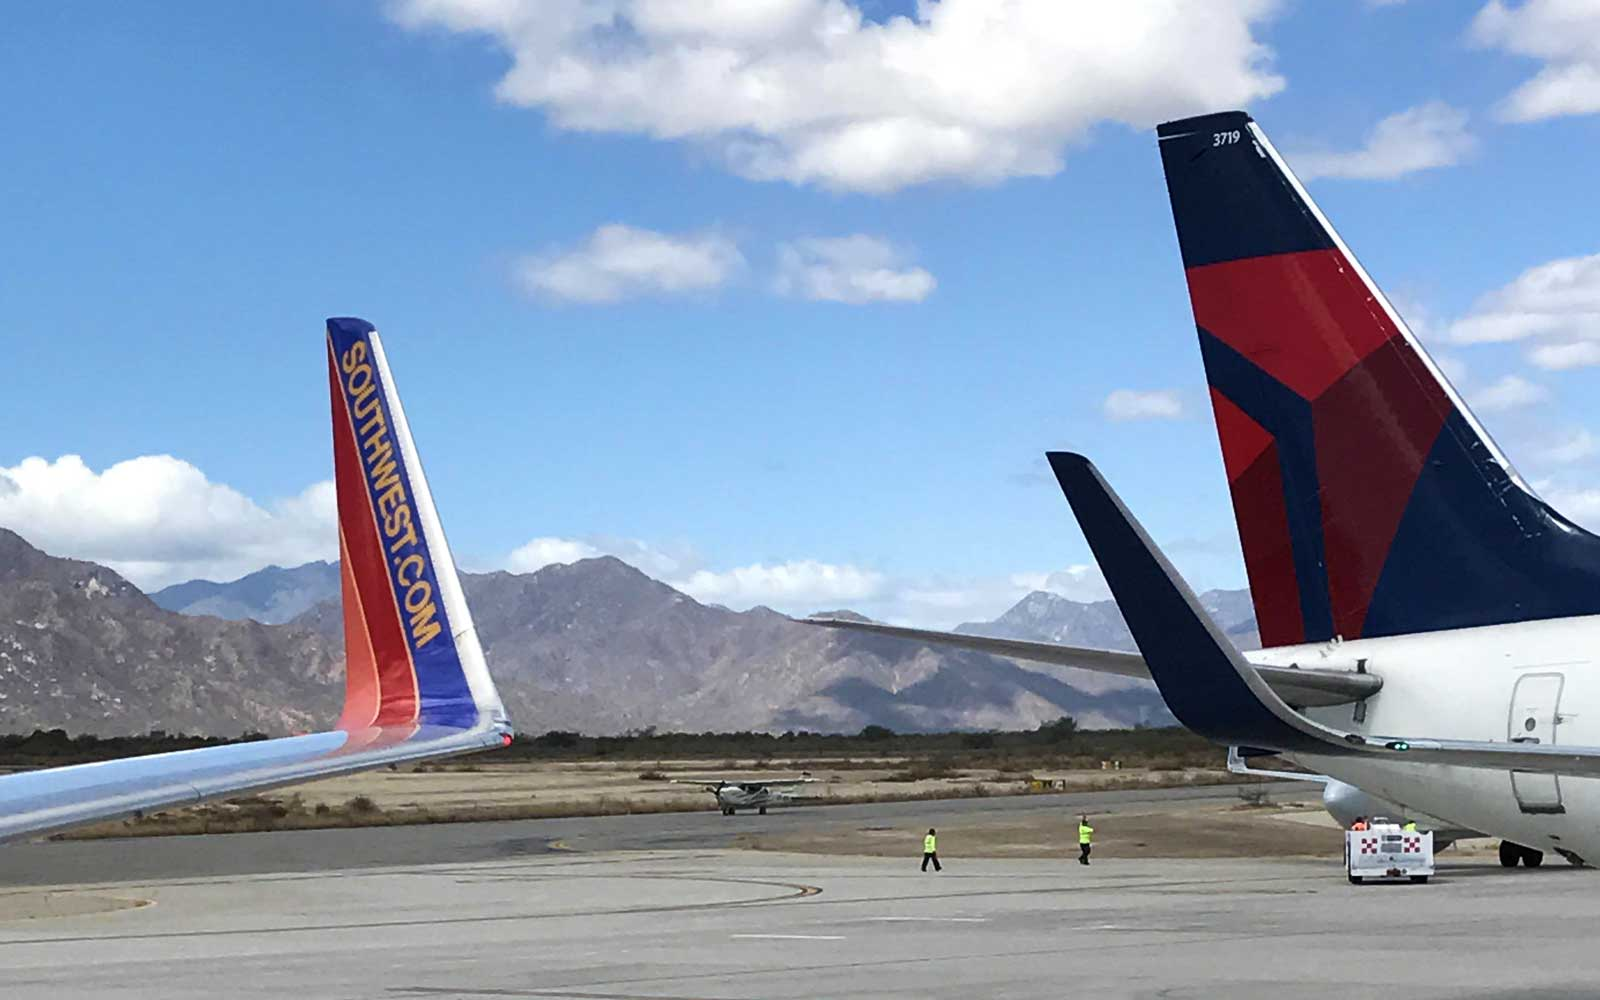 Tails of Delta and Southwest planes with views of the mountains